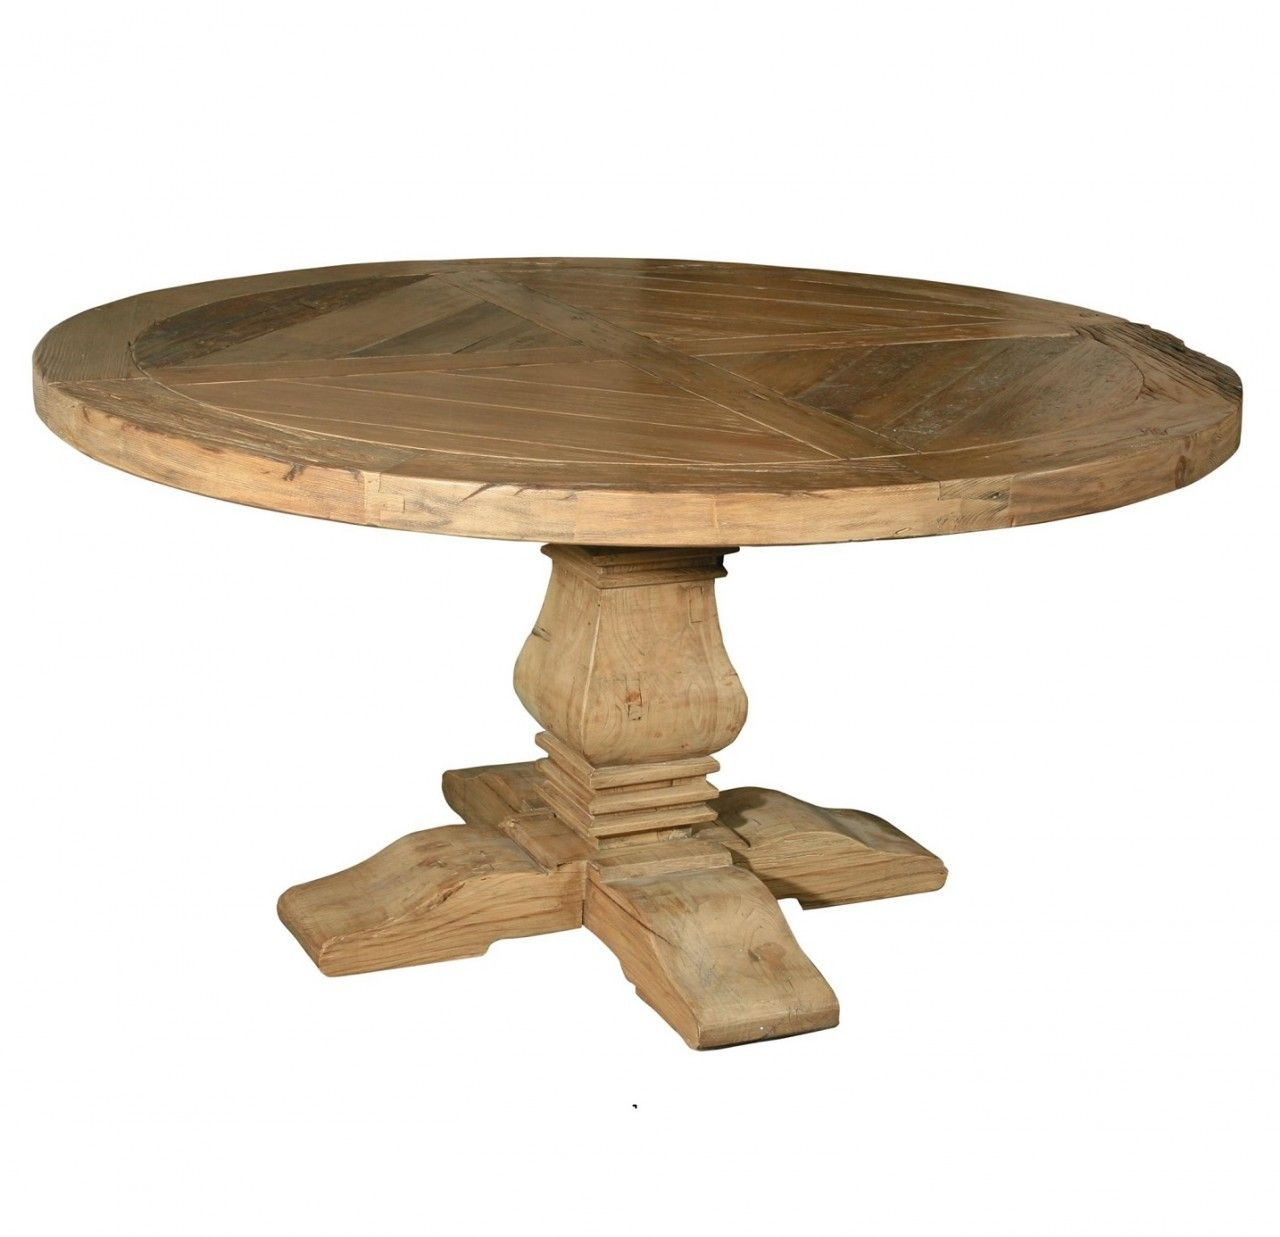 Pedestal 60 Round Dining Table Round Wood Dining Table Round Pedestal Dining Round Pedestal Dining Table